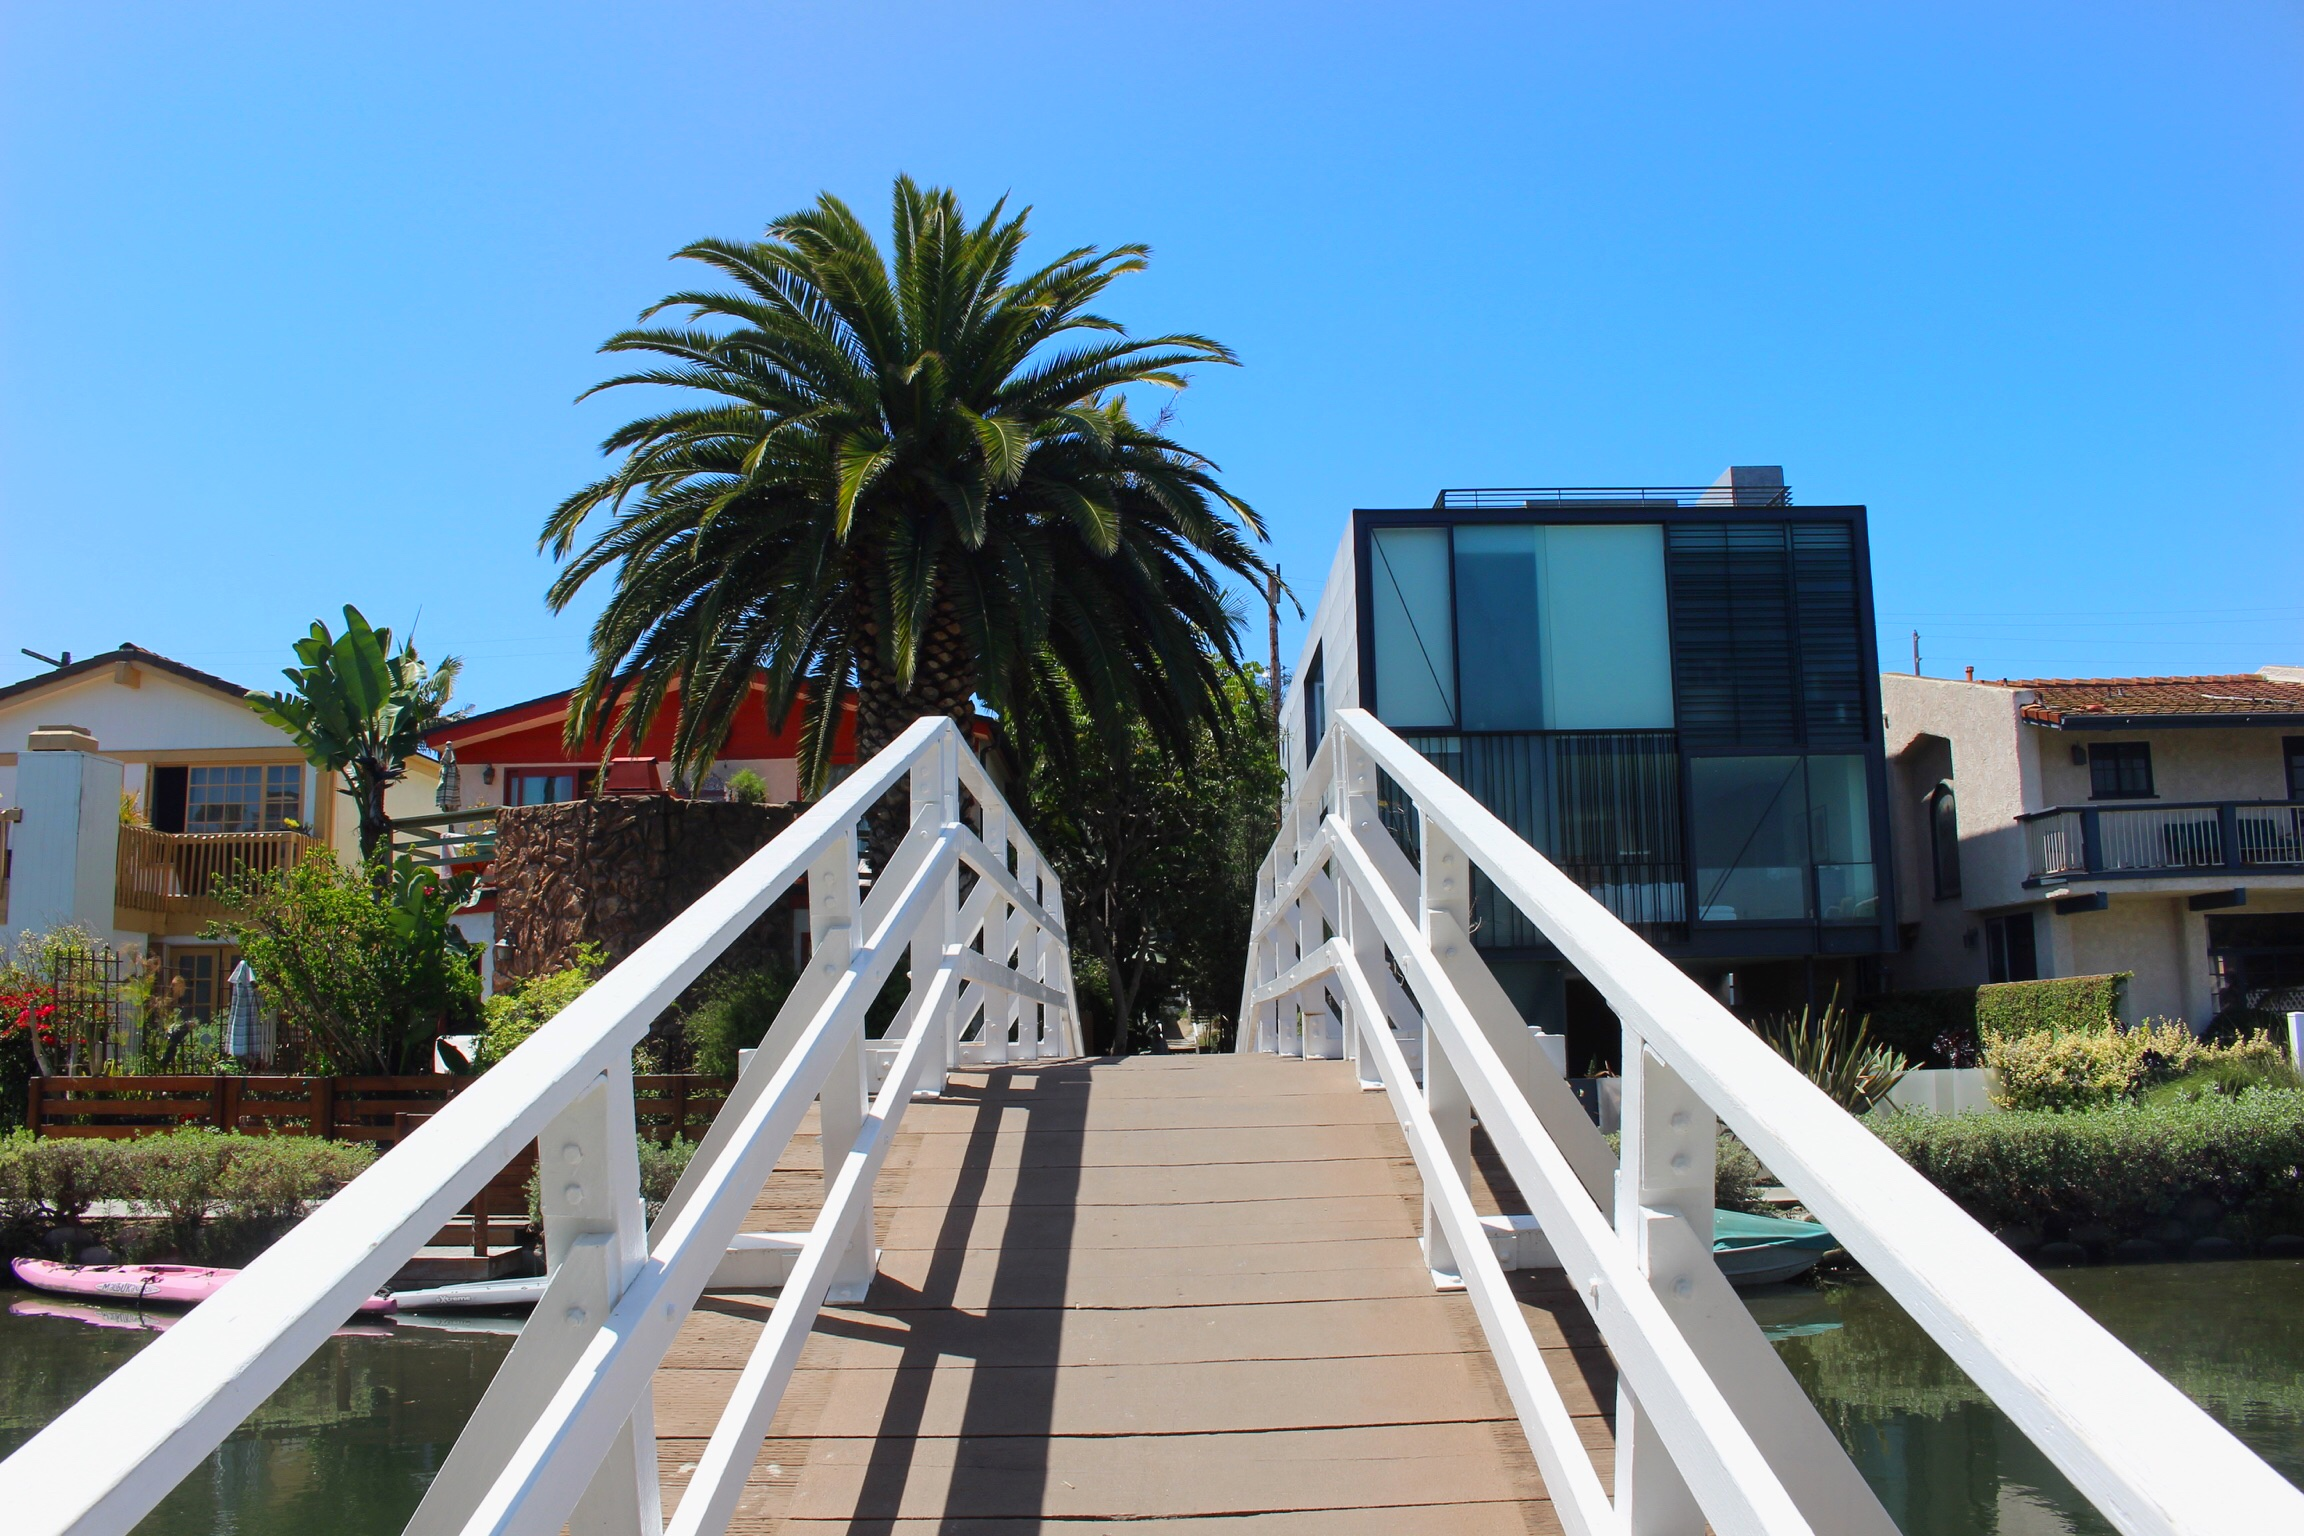 My first time in Venice, California!